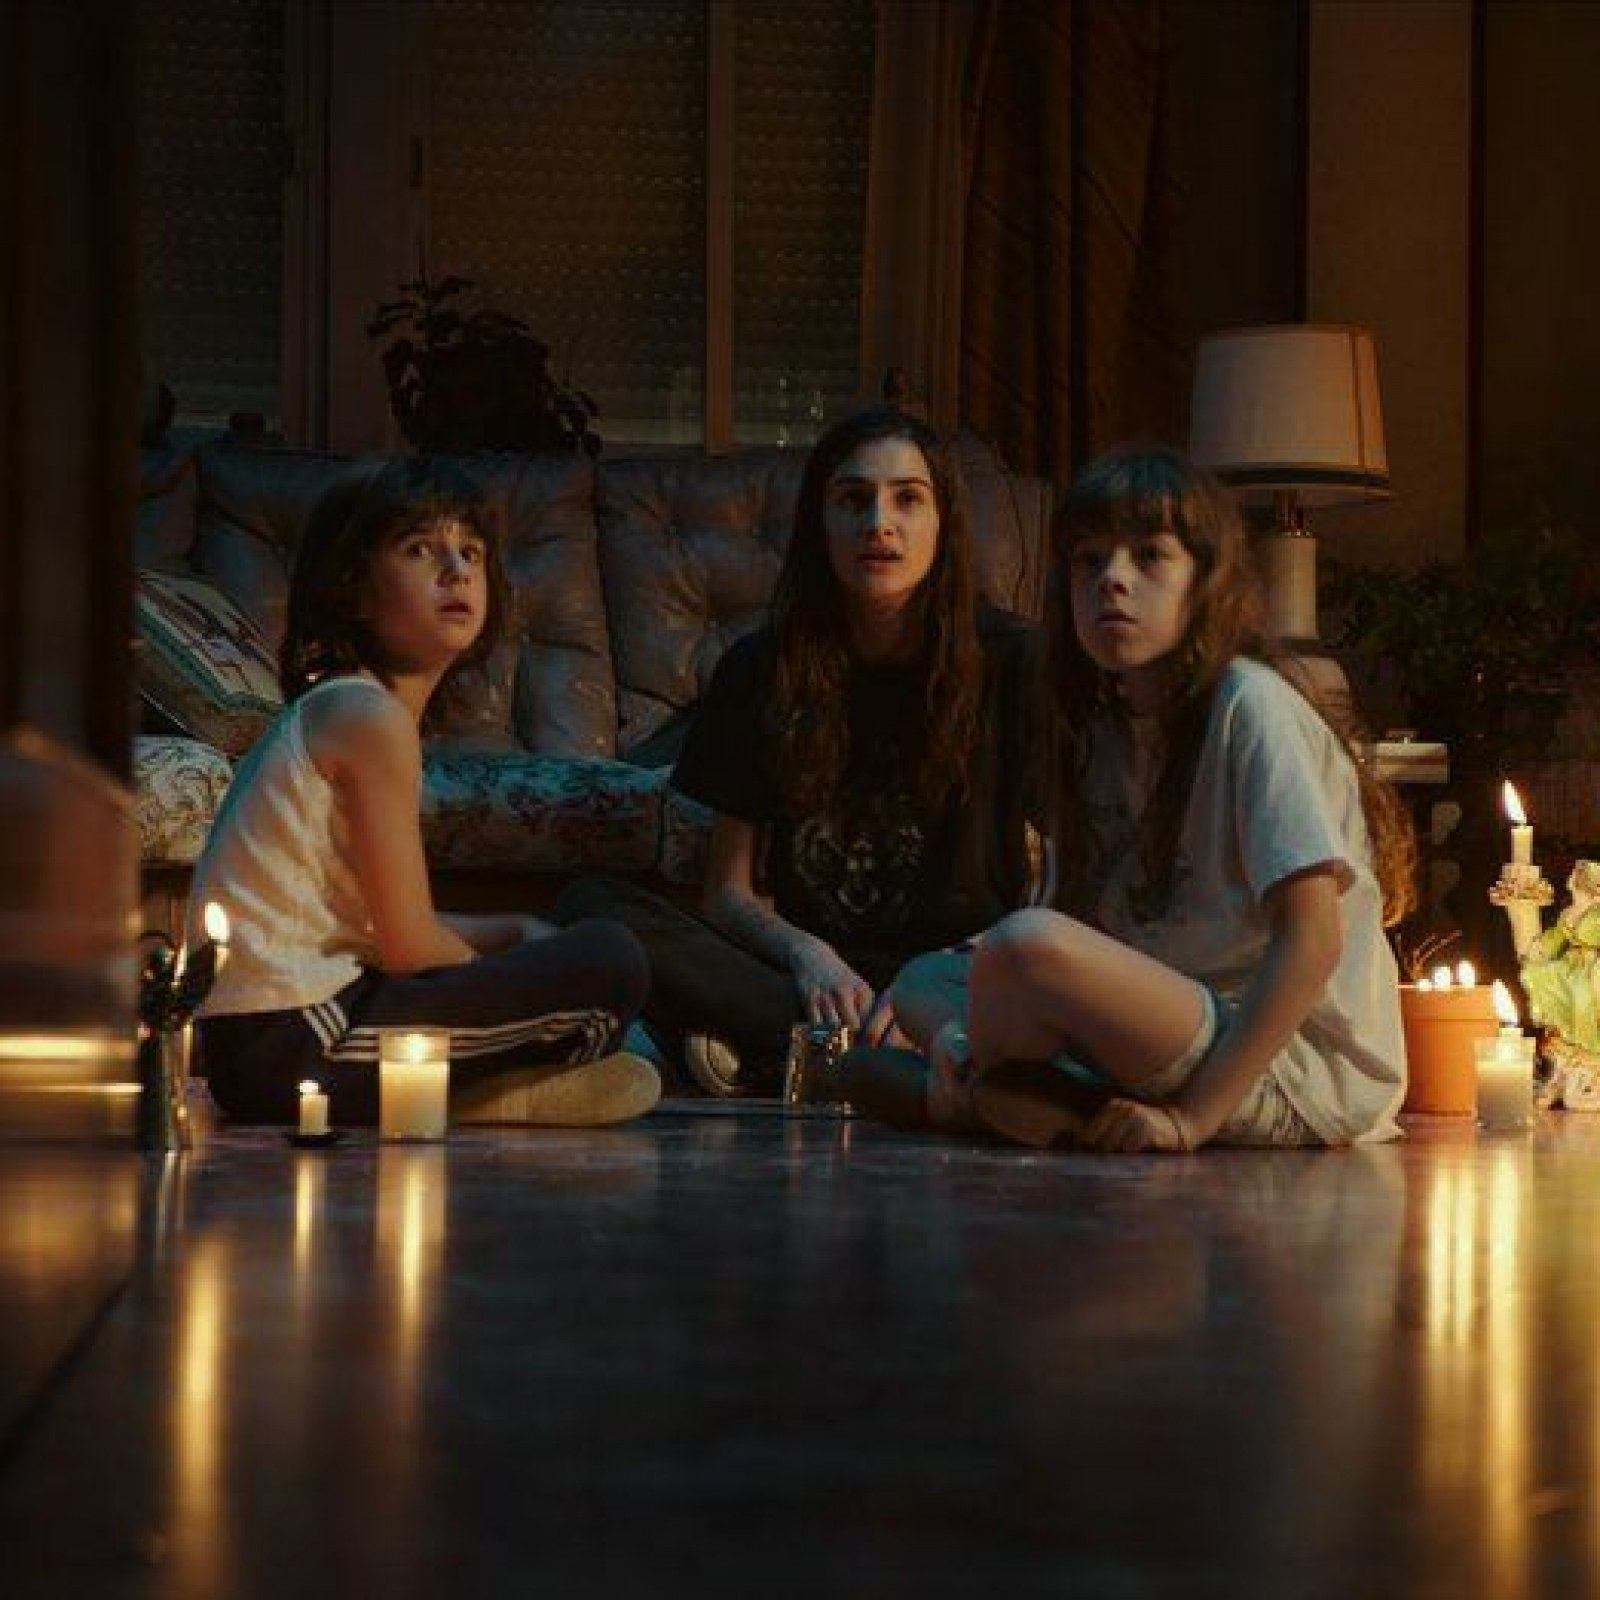 Is 'Veronica,' the New Netflix Horror Movie, a True Story?